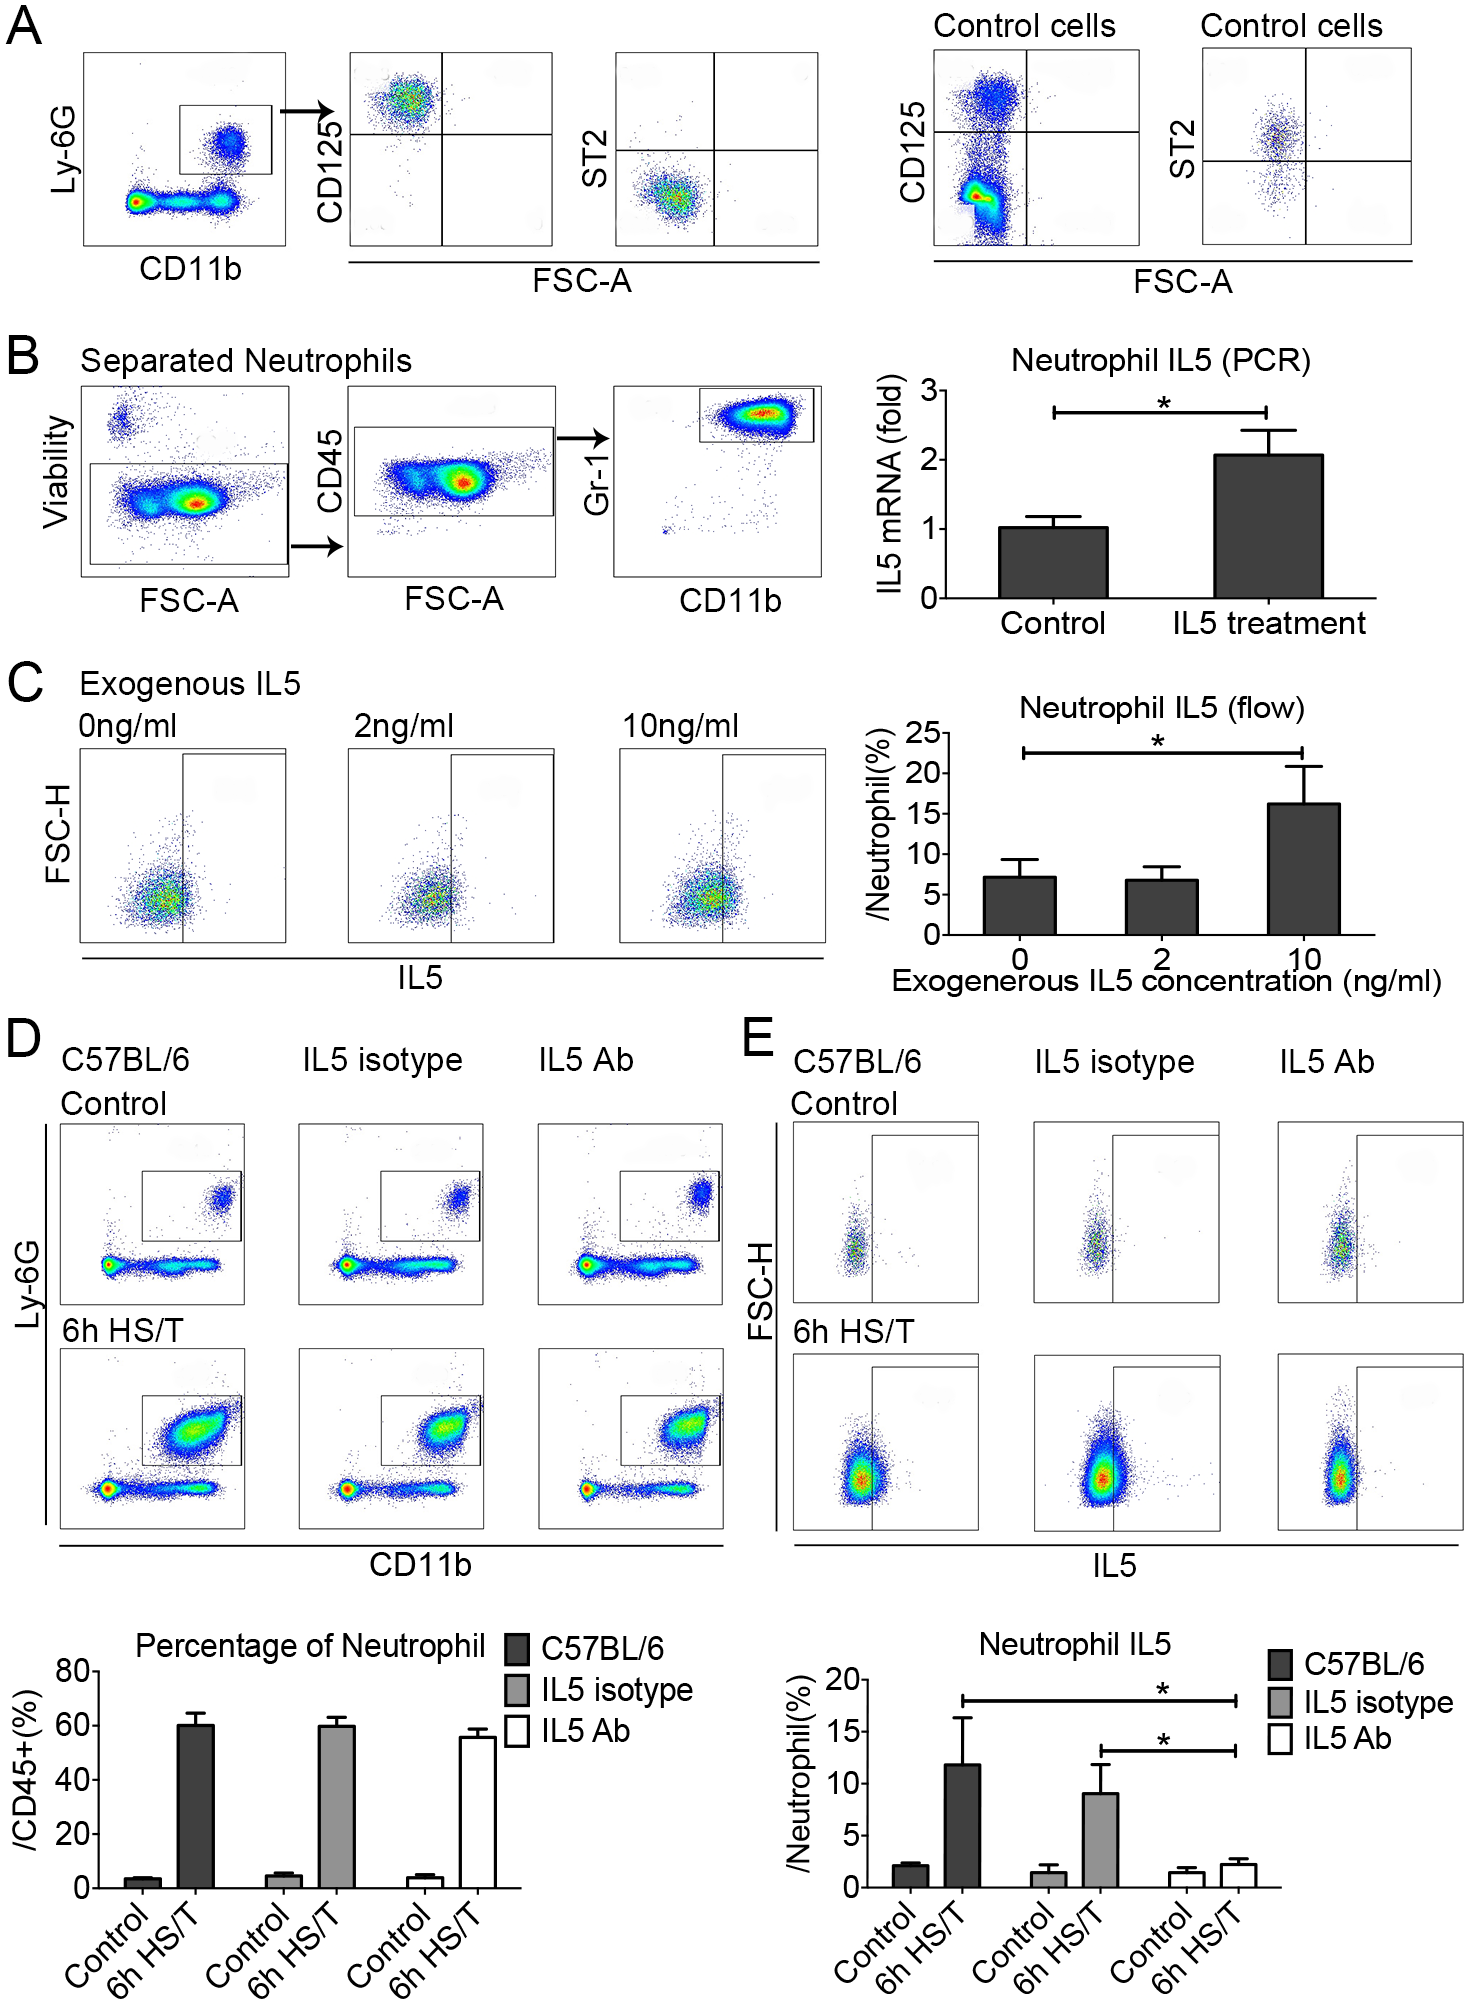 The effects of exogenous recombinant interleukin (IL) 5 or IL5 neutralization on neutrophil IL5 expression in the lungs of C57BL/6 mice after resuscitated hemorrhagic shock and tissue trauma (HS/T).